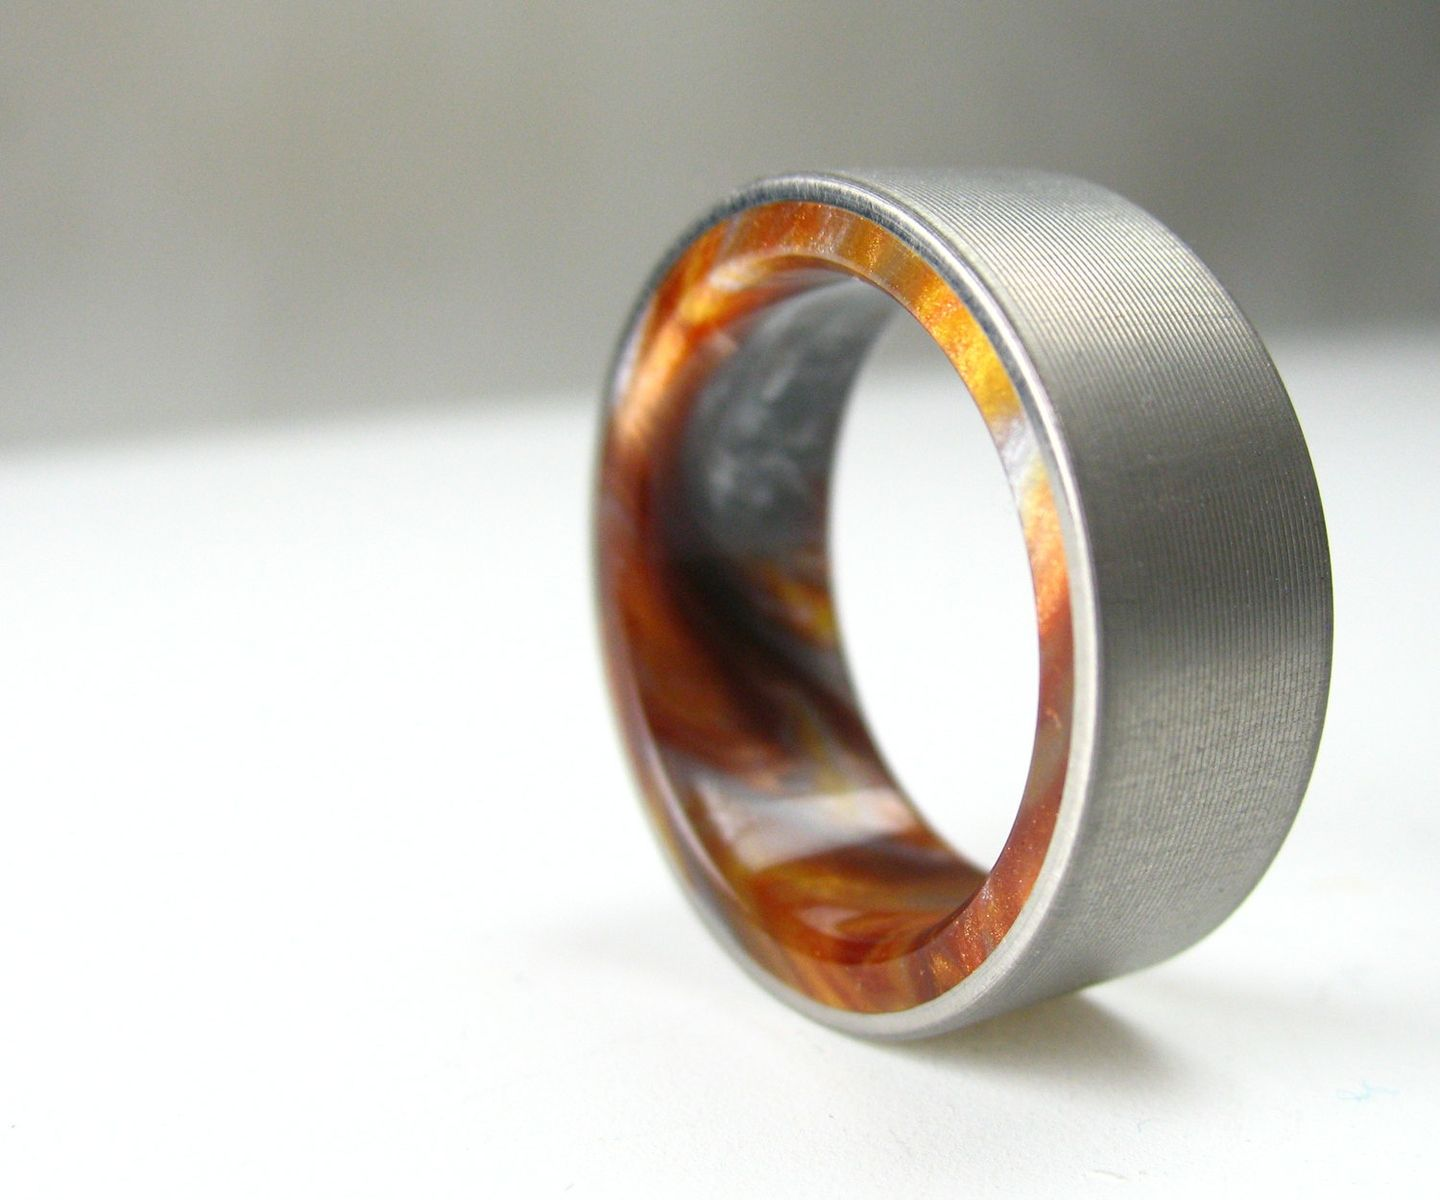 buy a handmade titanium wood tone burl mens wedding band iced bronze made to order from spexton. Black Bedroom Furniture Sets. Home Design Ideas